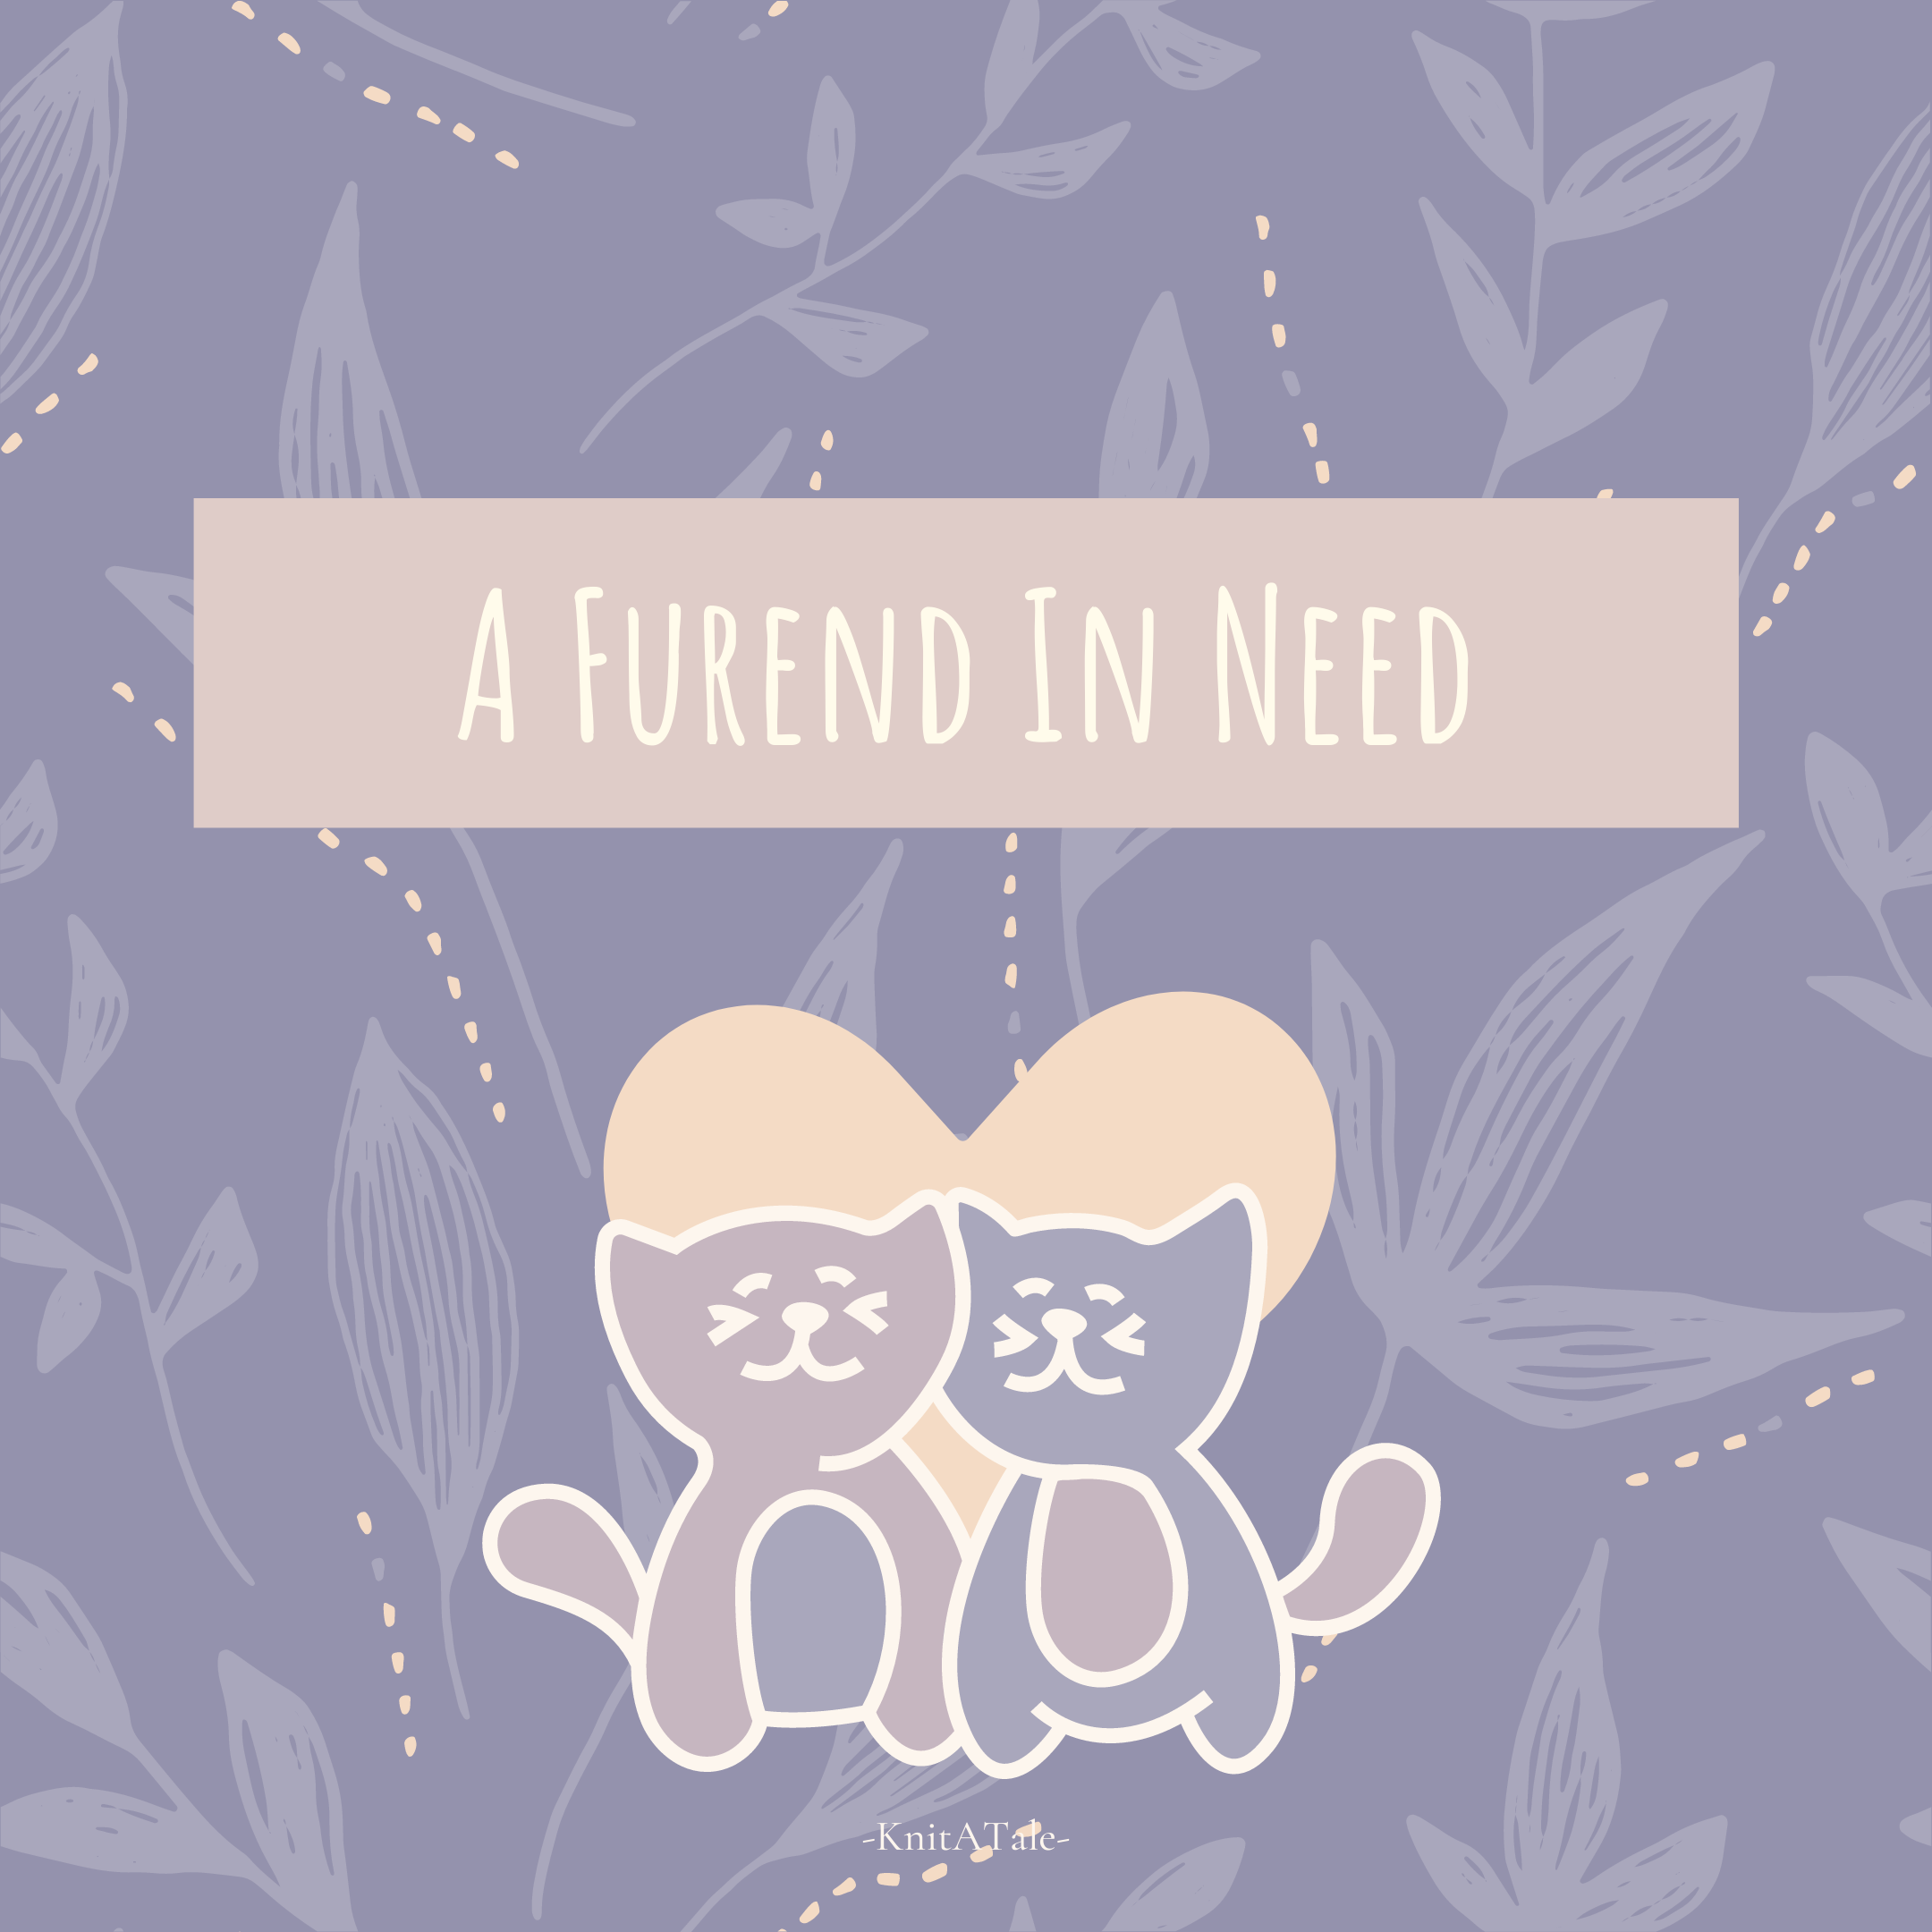 A Furend In Need